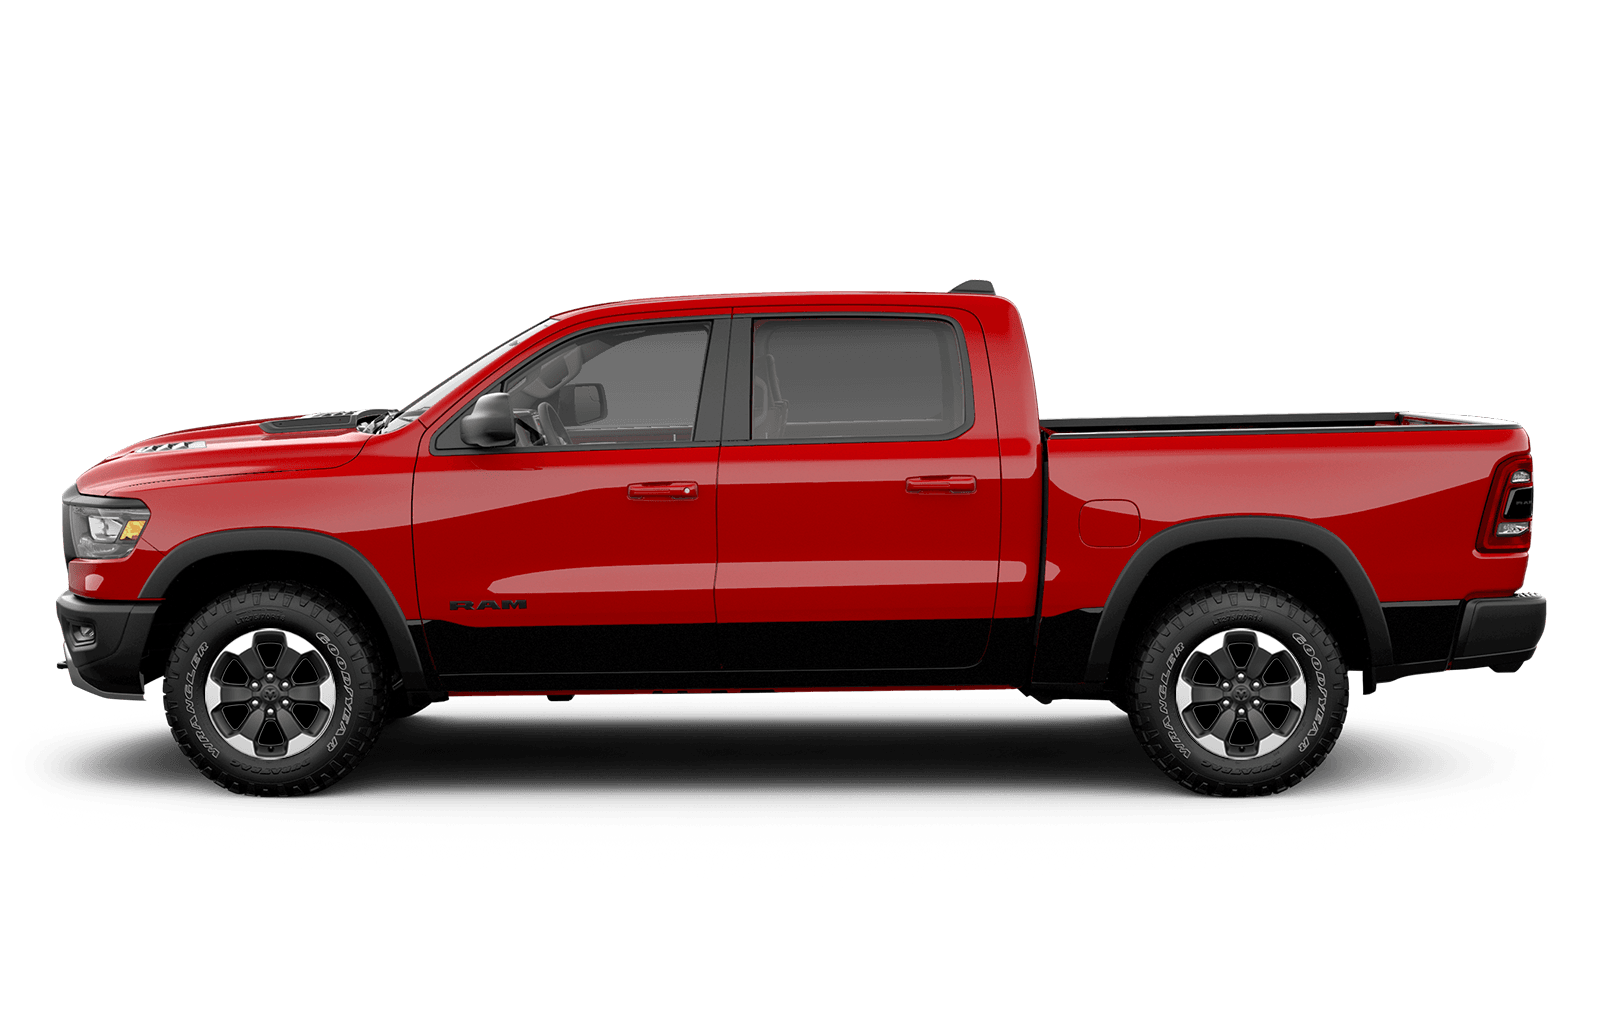 2019 Ram 1500 18inch painted black aluminum wheels on red truck